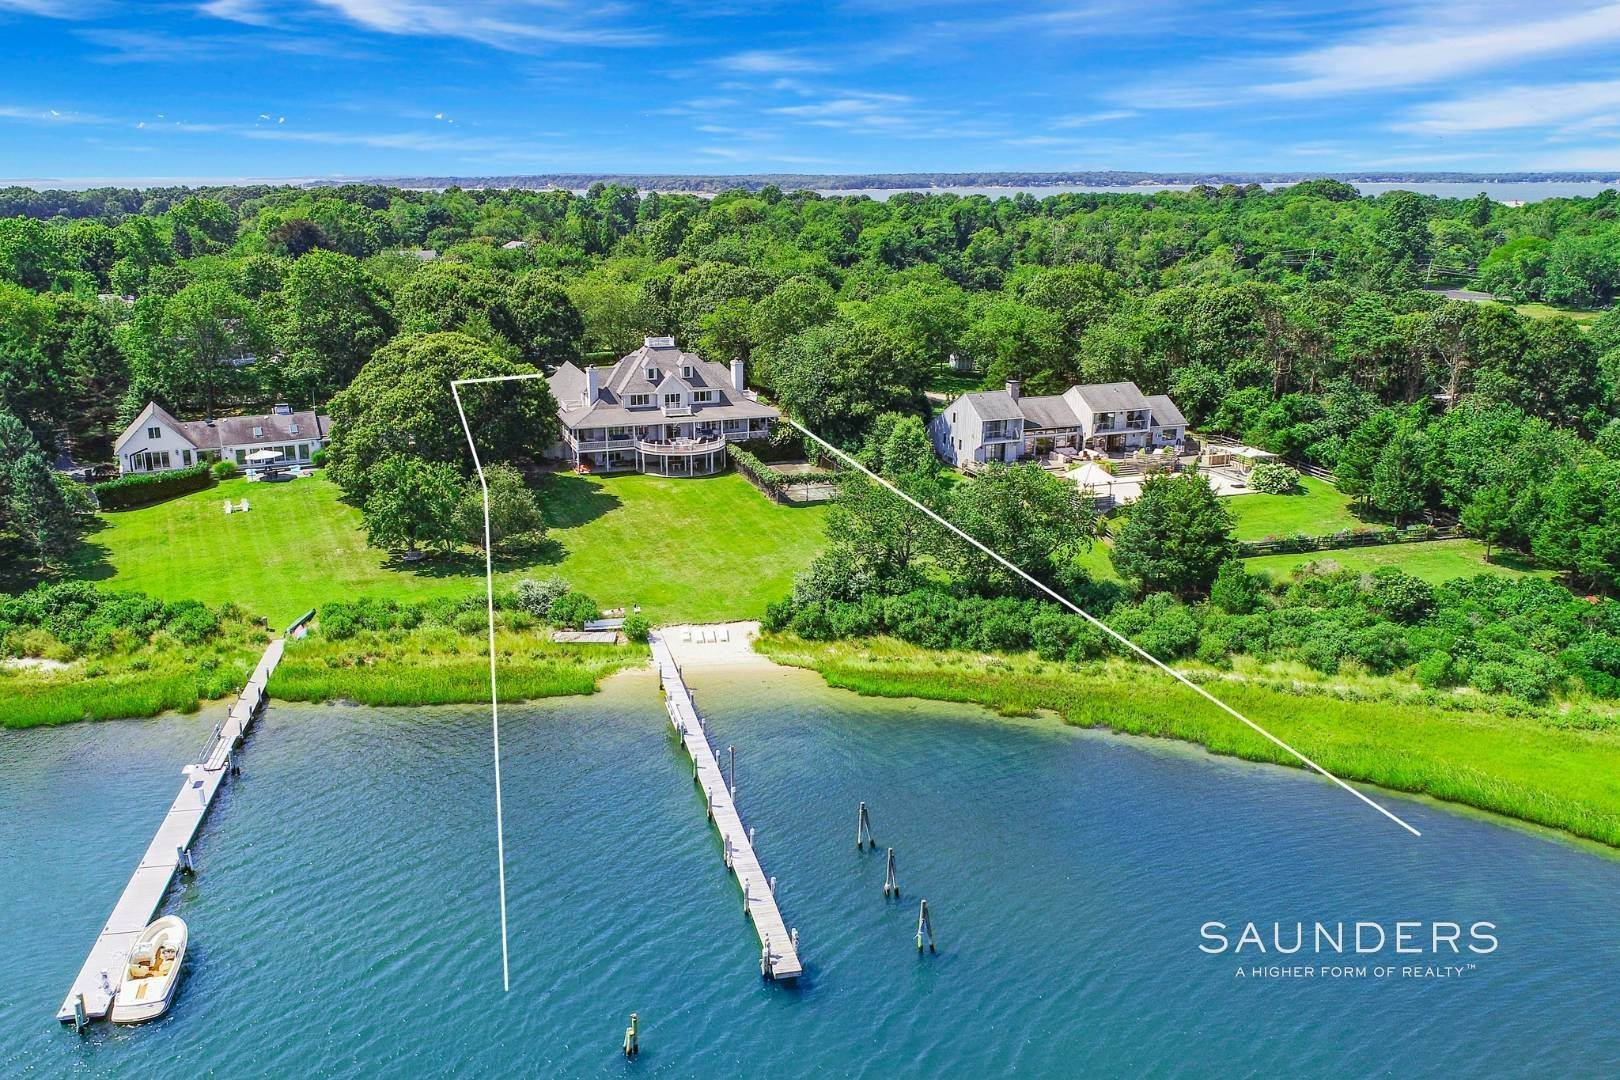 Single Family Homes for Sale at Estate Section Compound With Deep Water Dock, Sandy Beach, Pool 58 Westmoreland Drive, Shelter Island Heights, Shelter Island, NY 11964